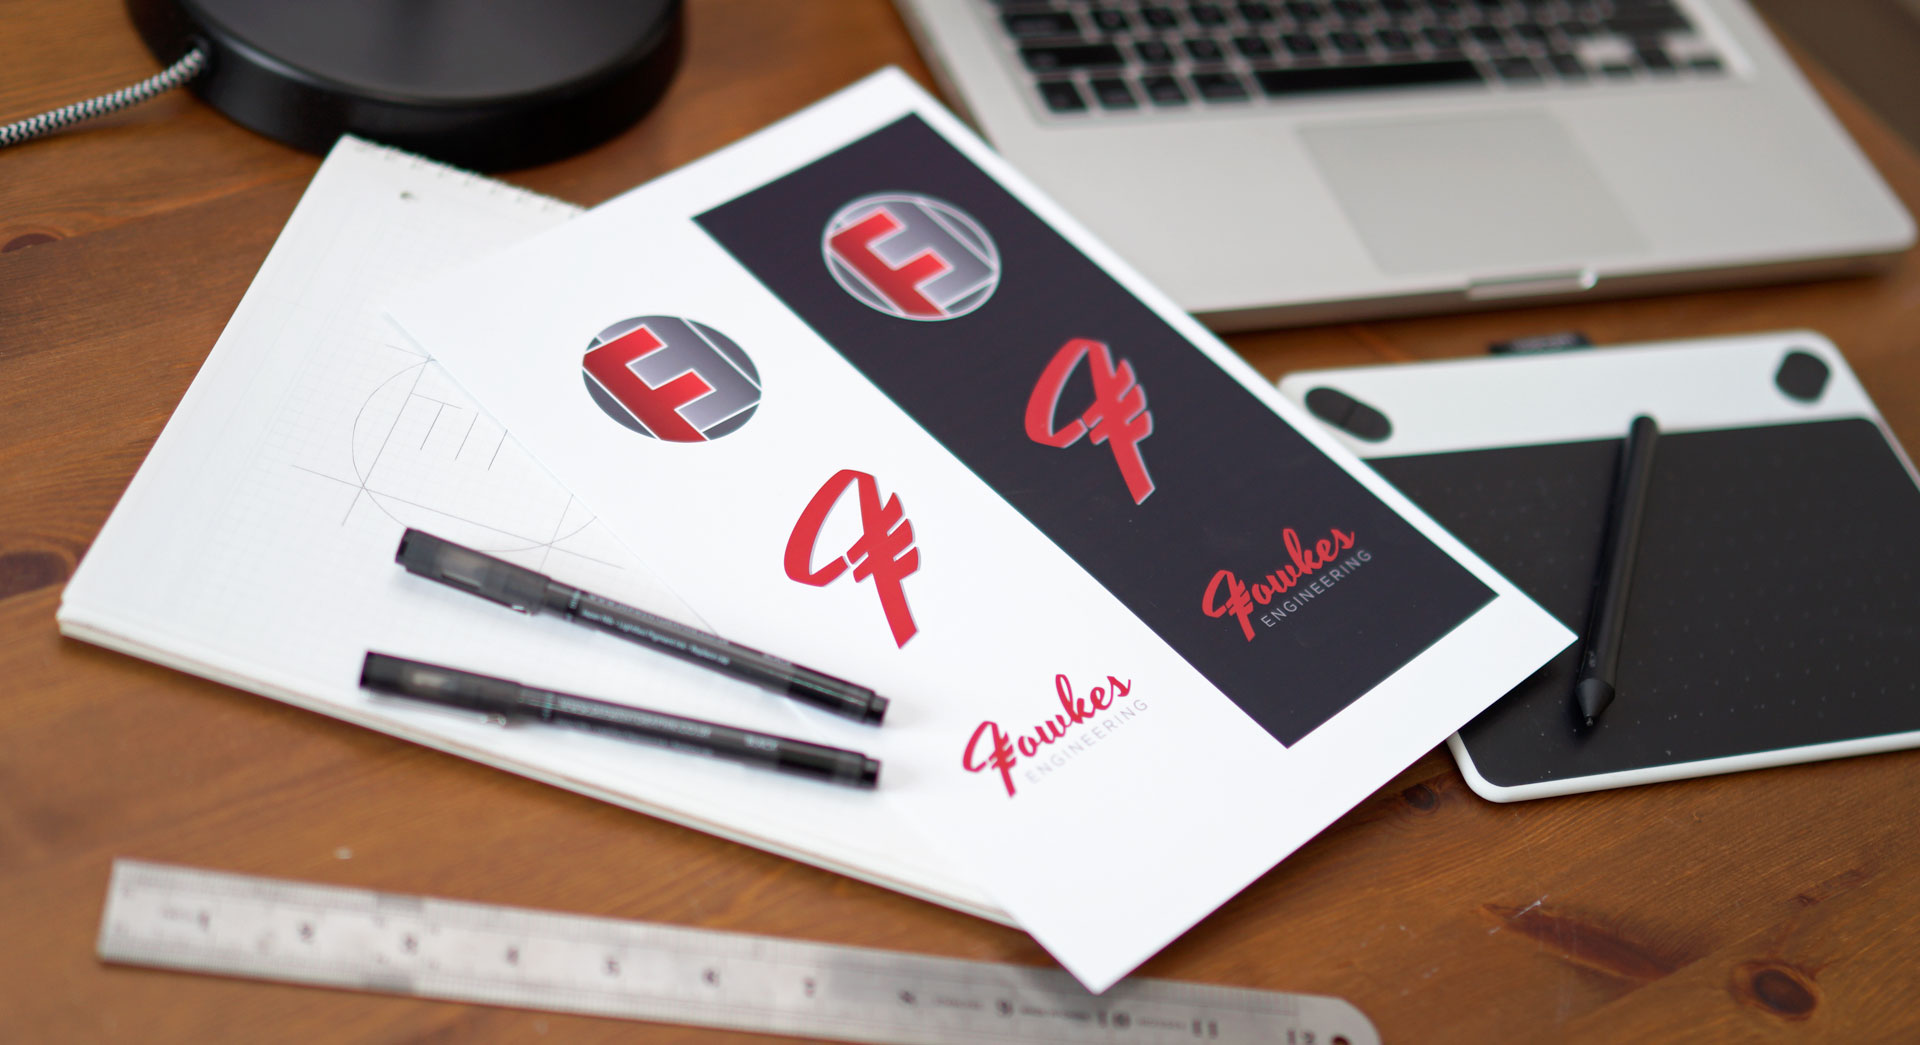 Design for business header image showing logo design